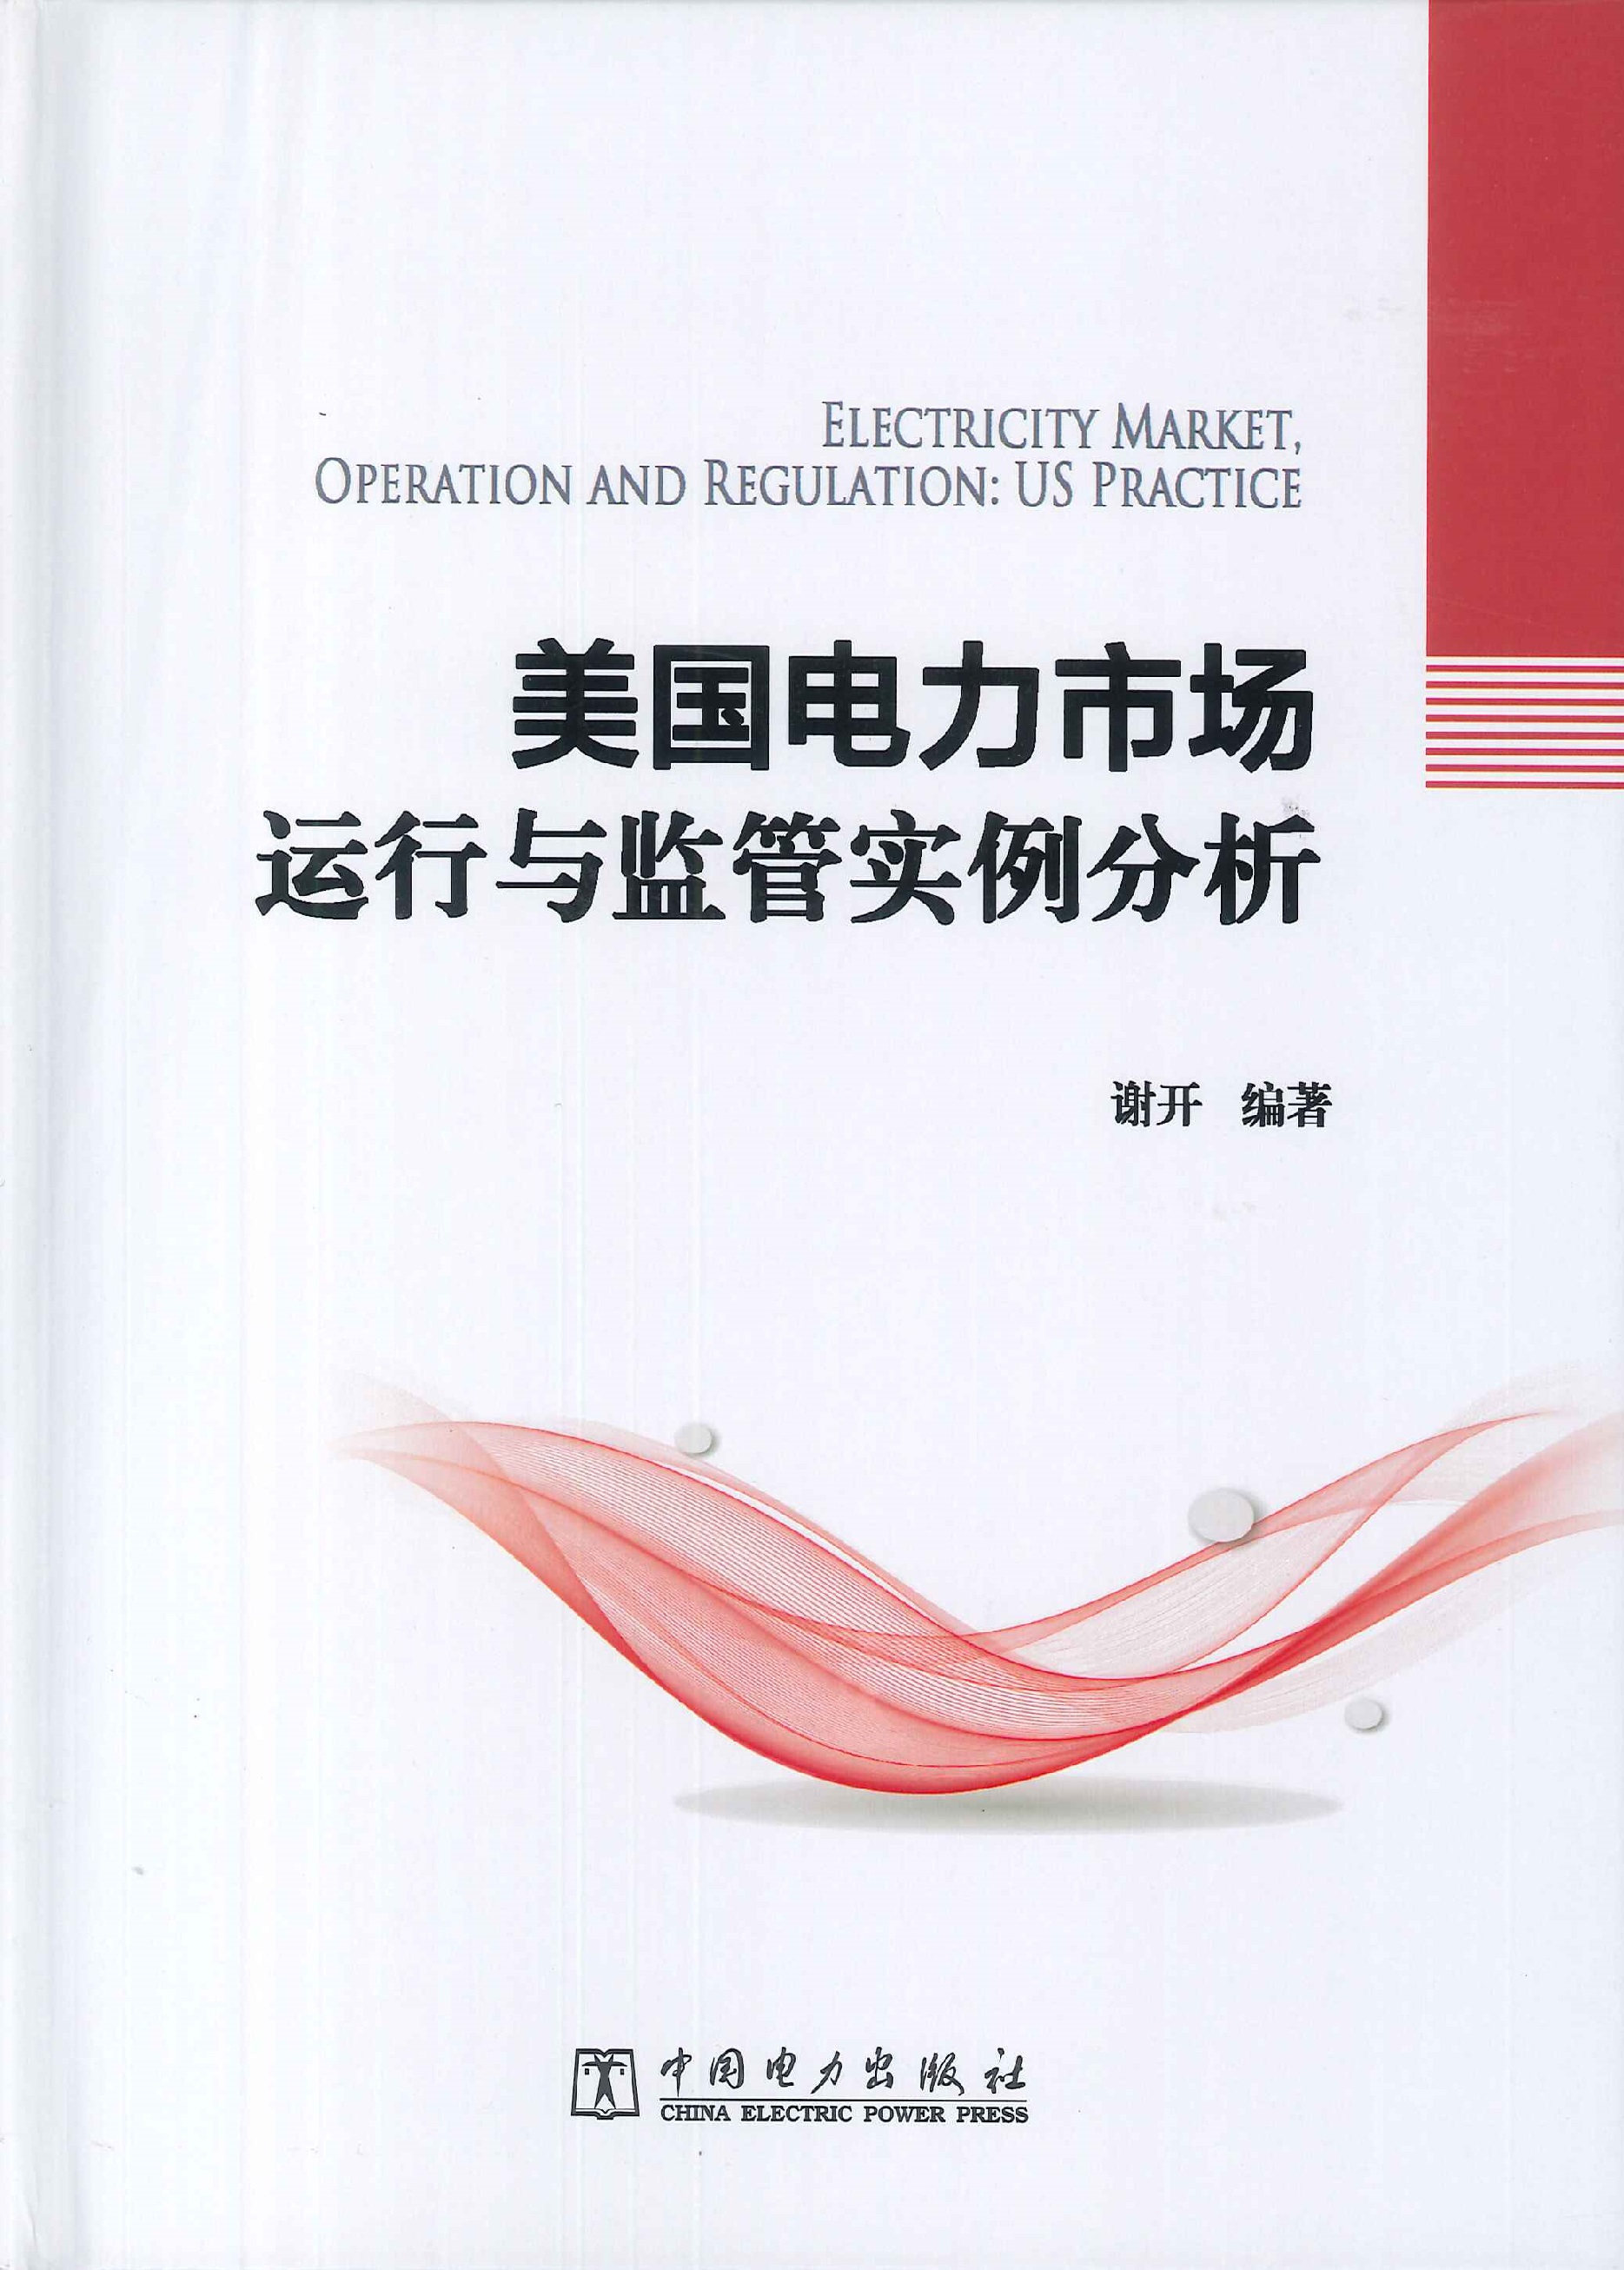 美国电力市场:运行与监管实例分析=Electricity market, operation and regulation: US practice